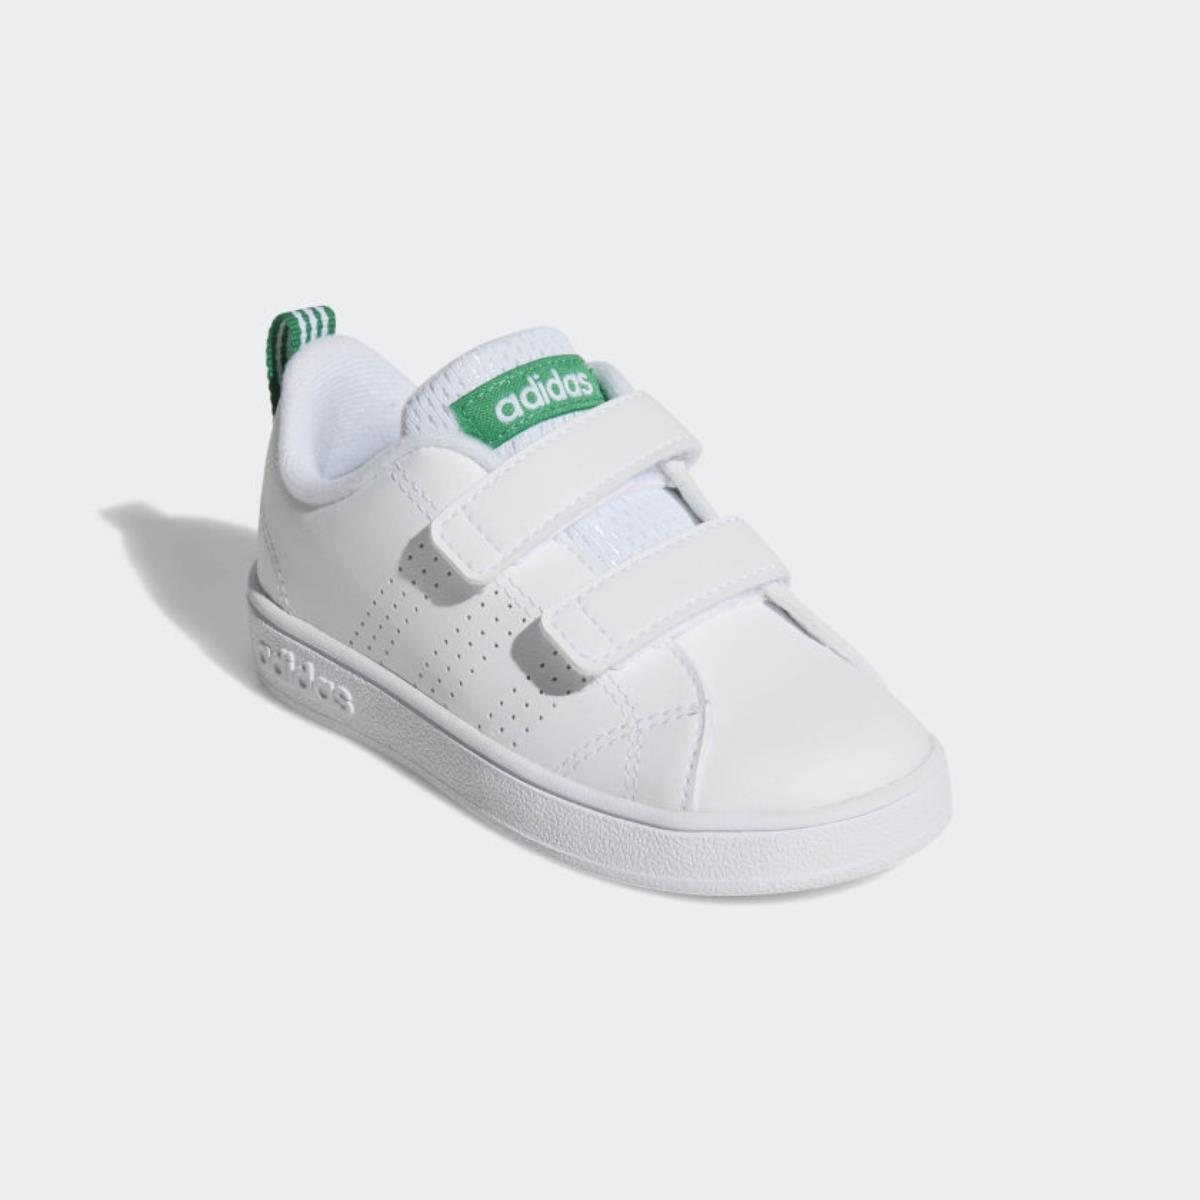 buy online 5d480 f3924 ADIDAS NEO KIDS AW4889